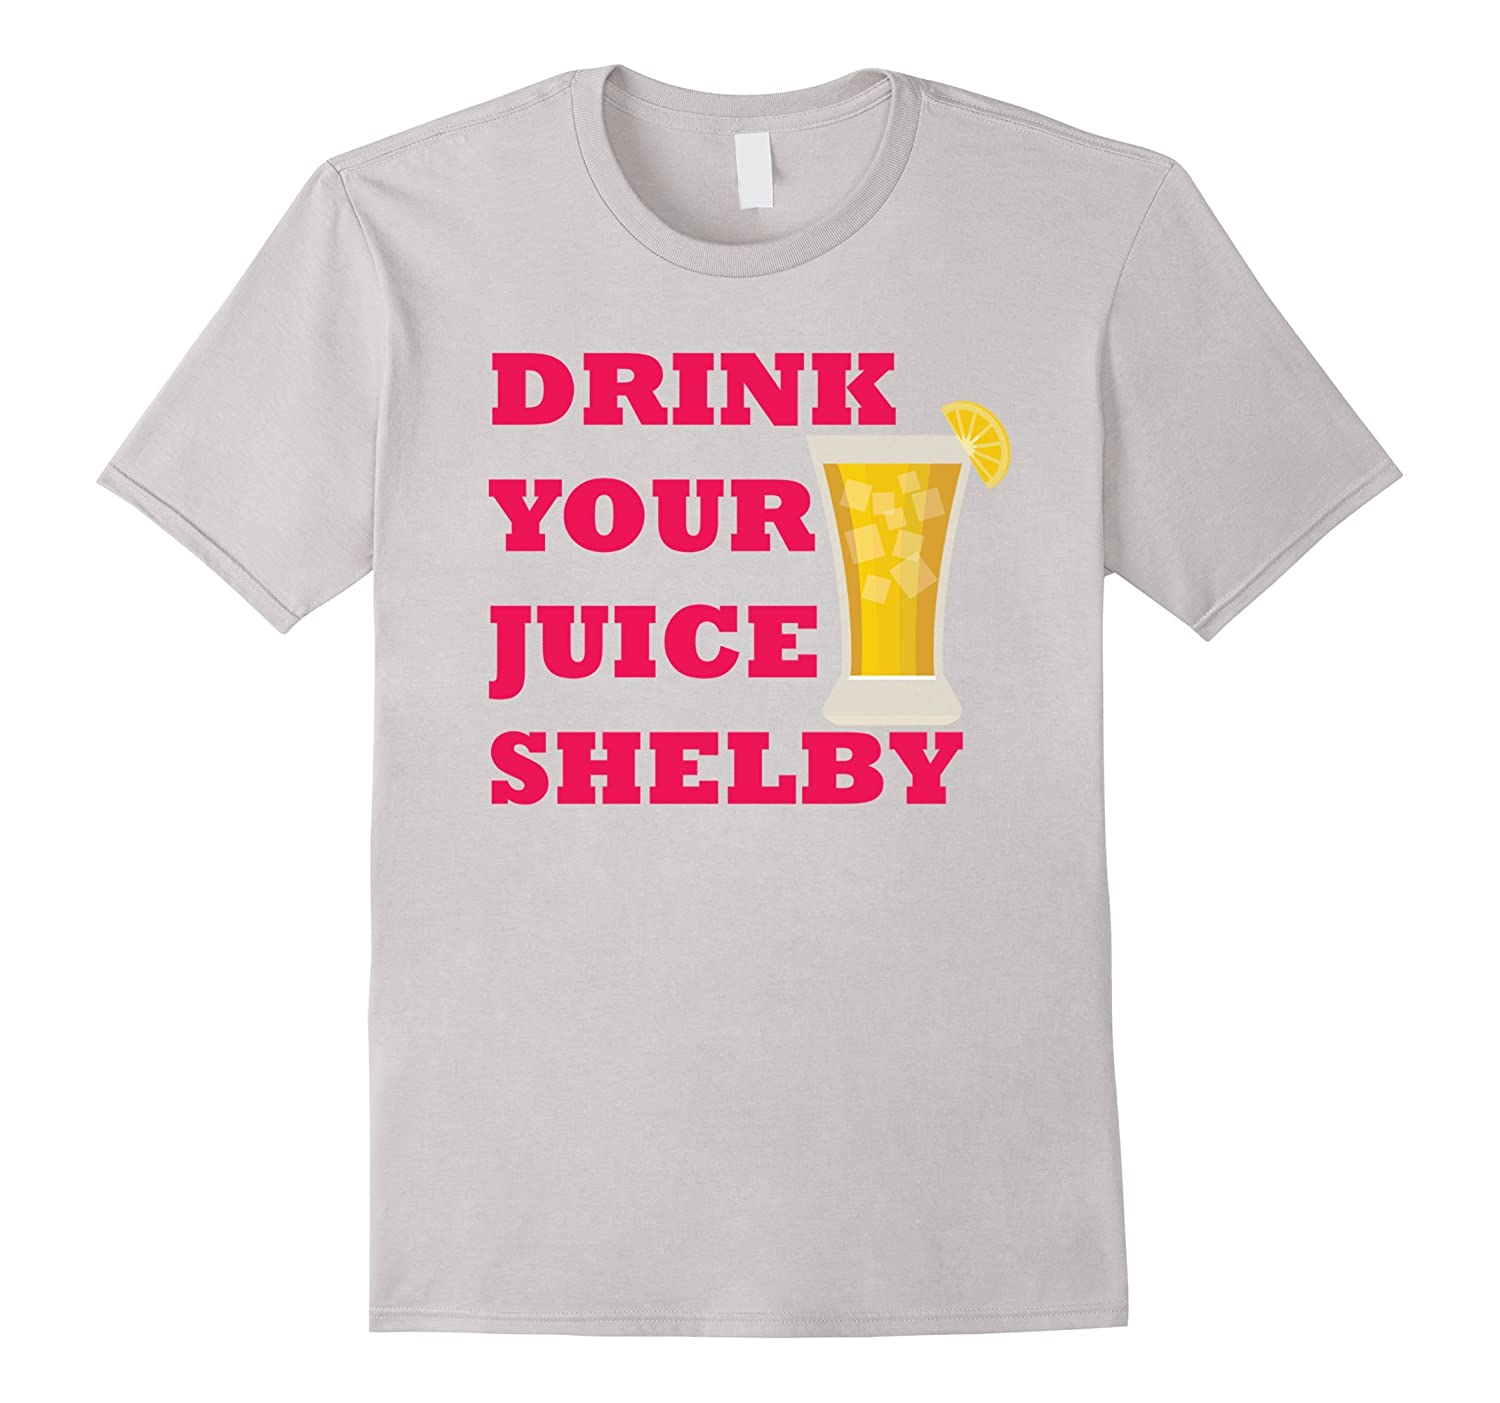 Shelby Drink Your Juice Shirt